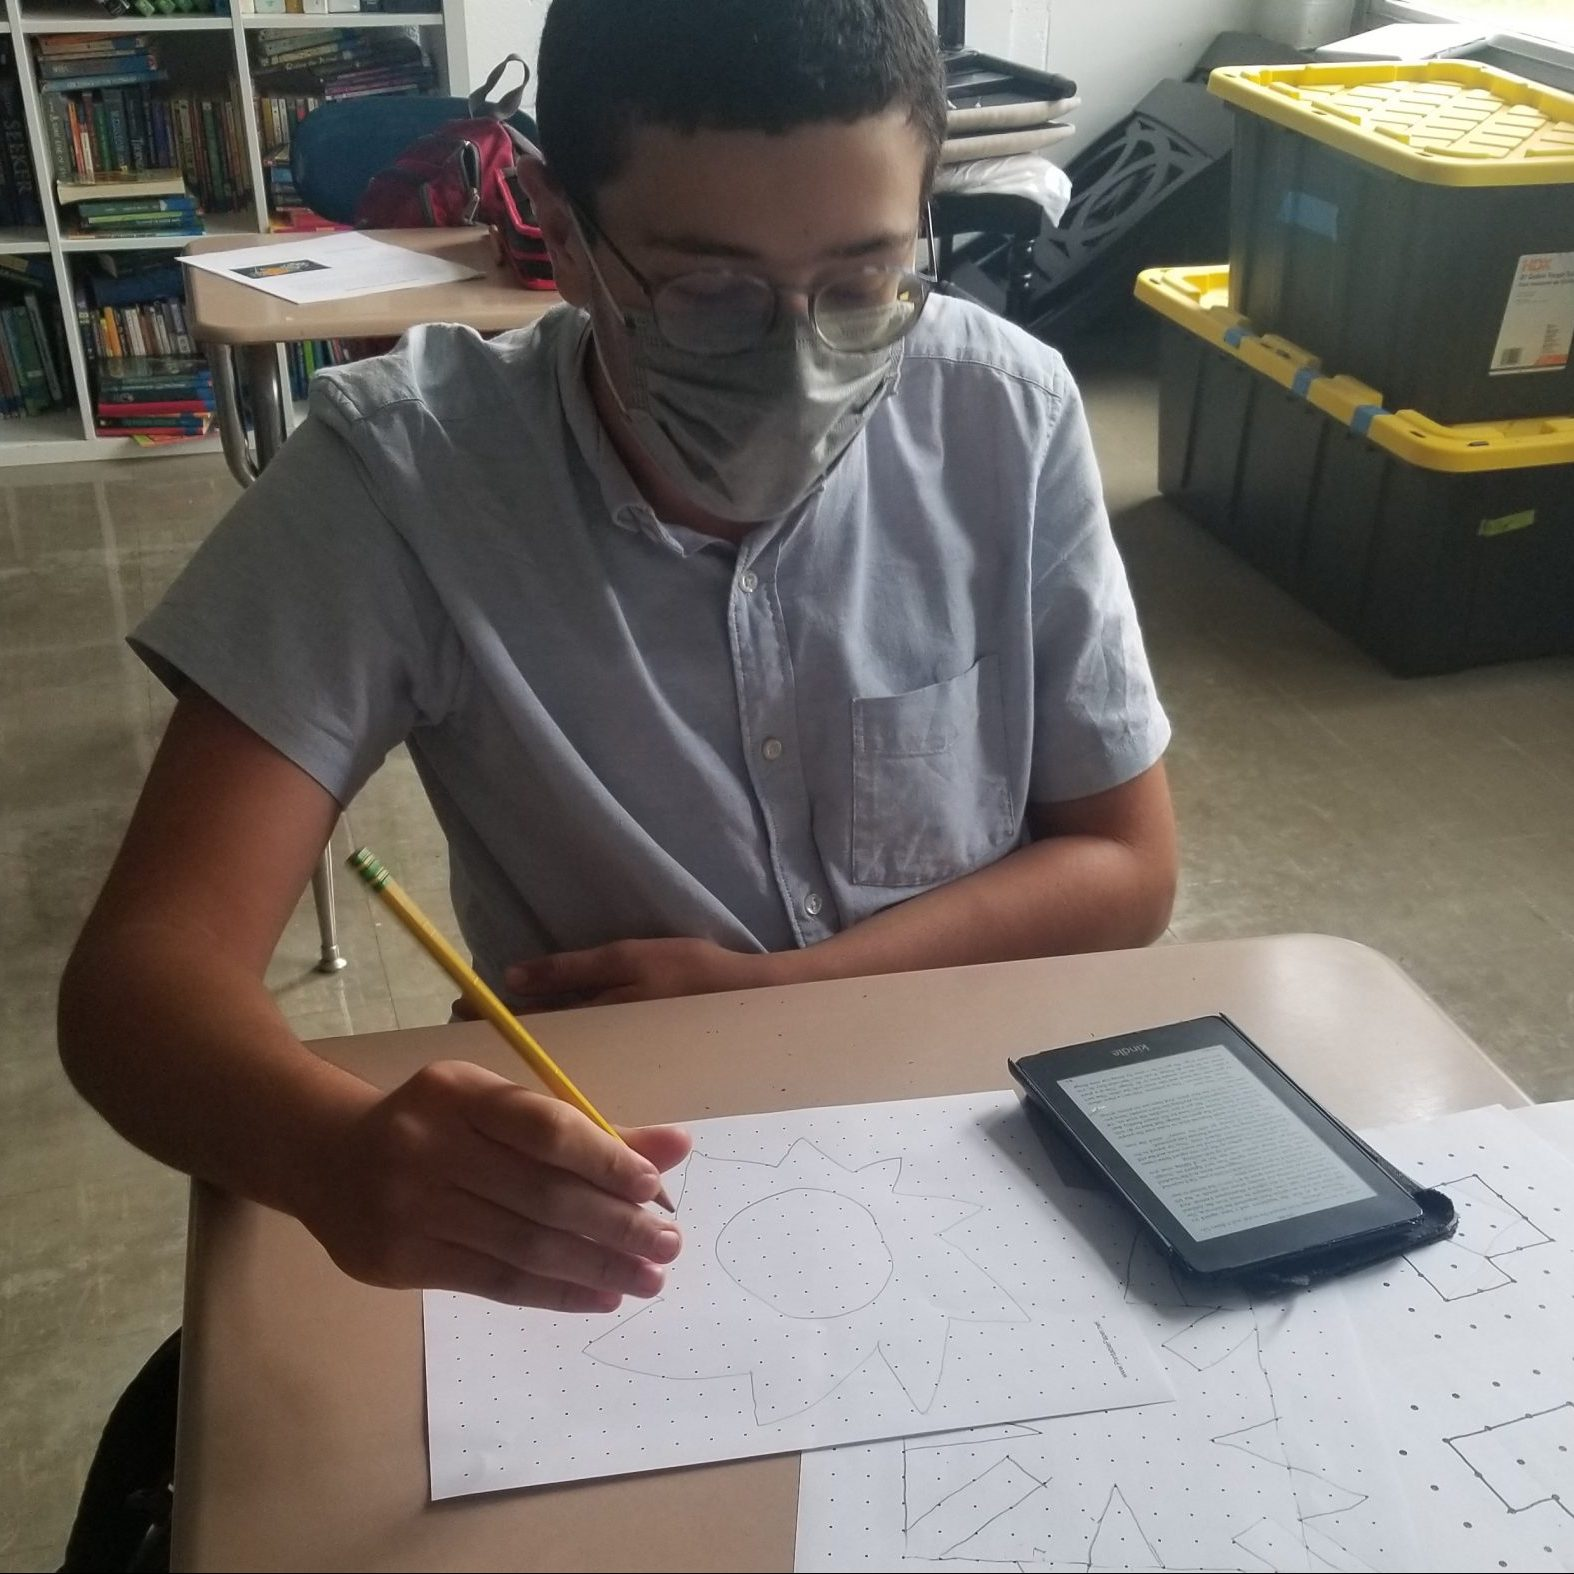 mathematically gifted students can expand their thinking about what is mathematical